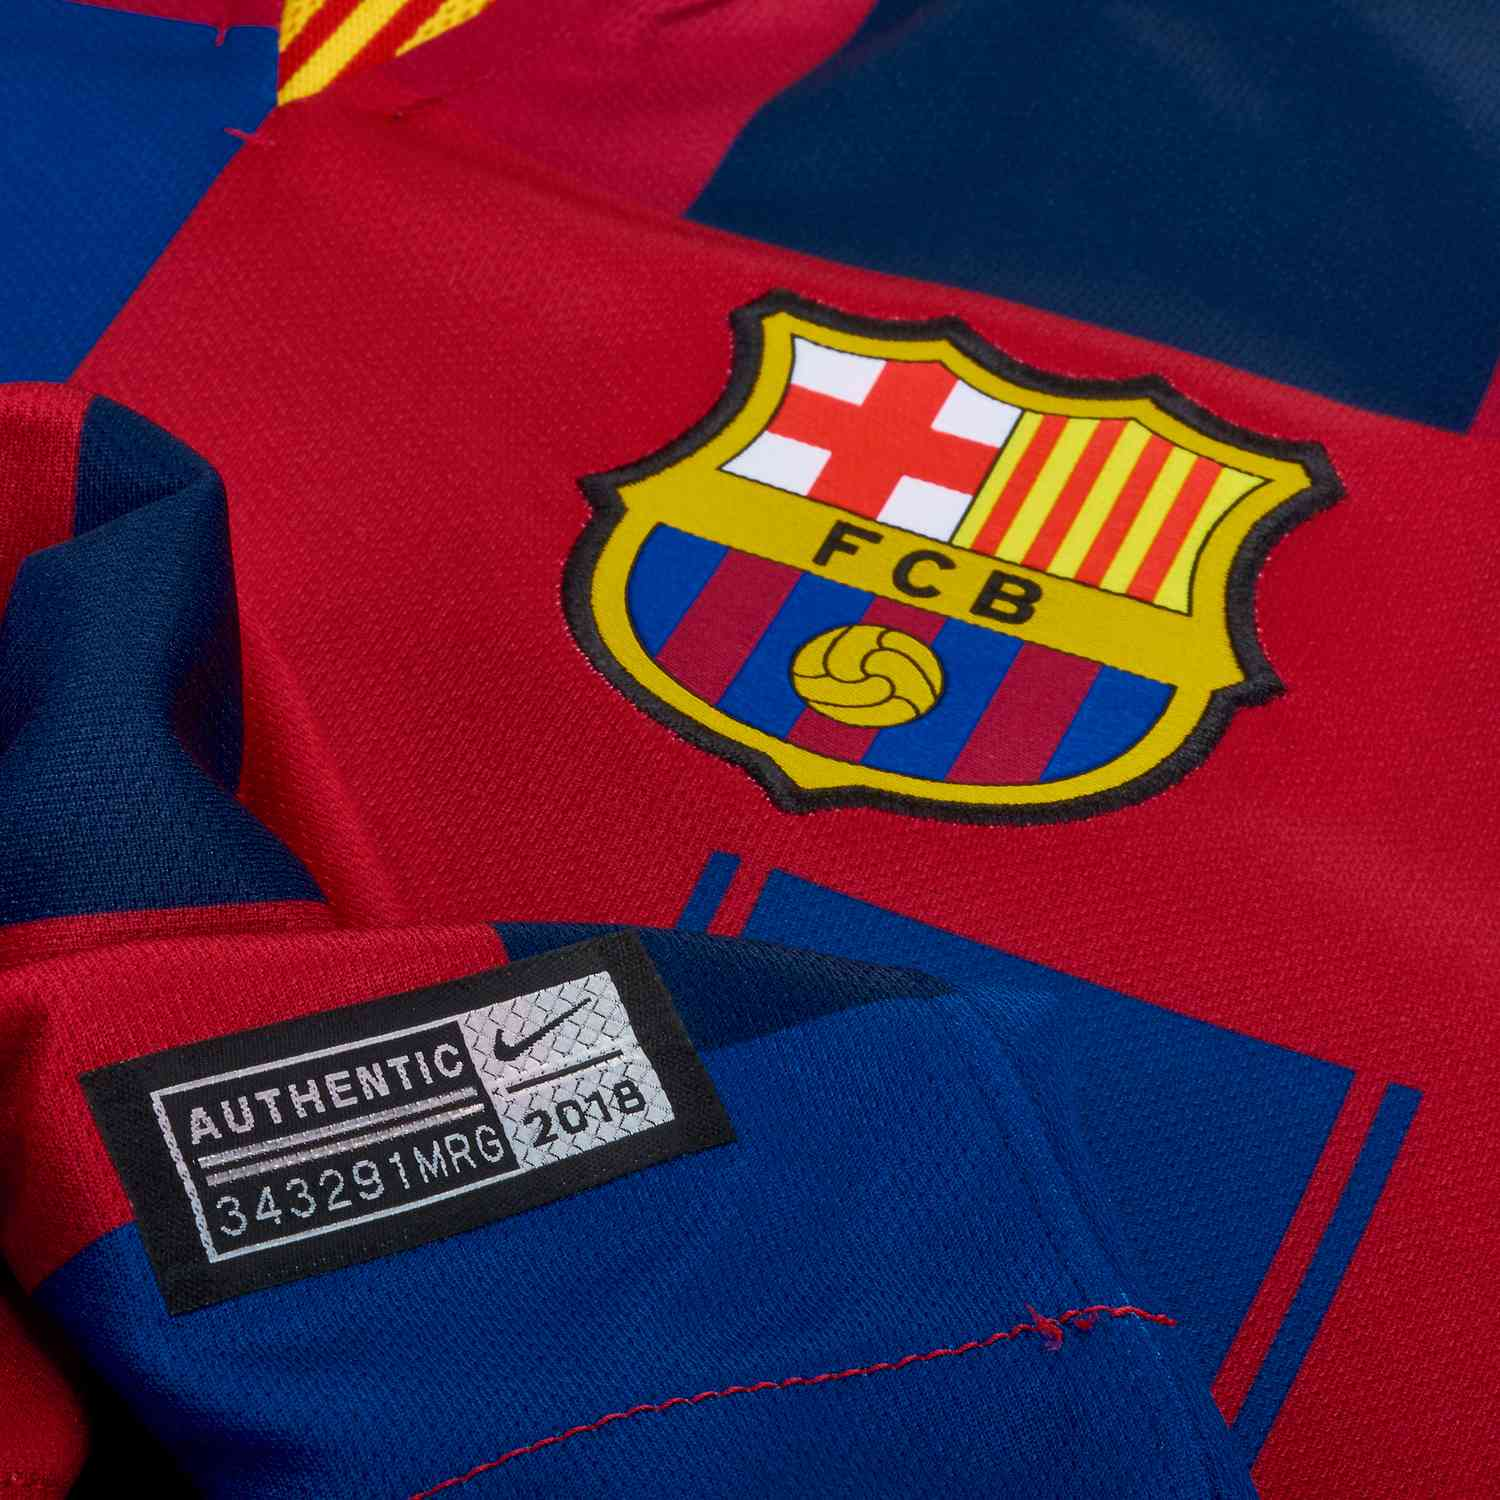 quality design cfa58 934f4 Nike and Barcelona 20th Anniversary Home Jersey - SoccerPro